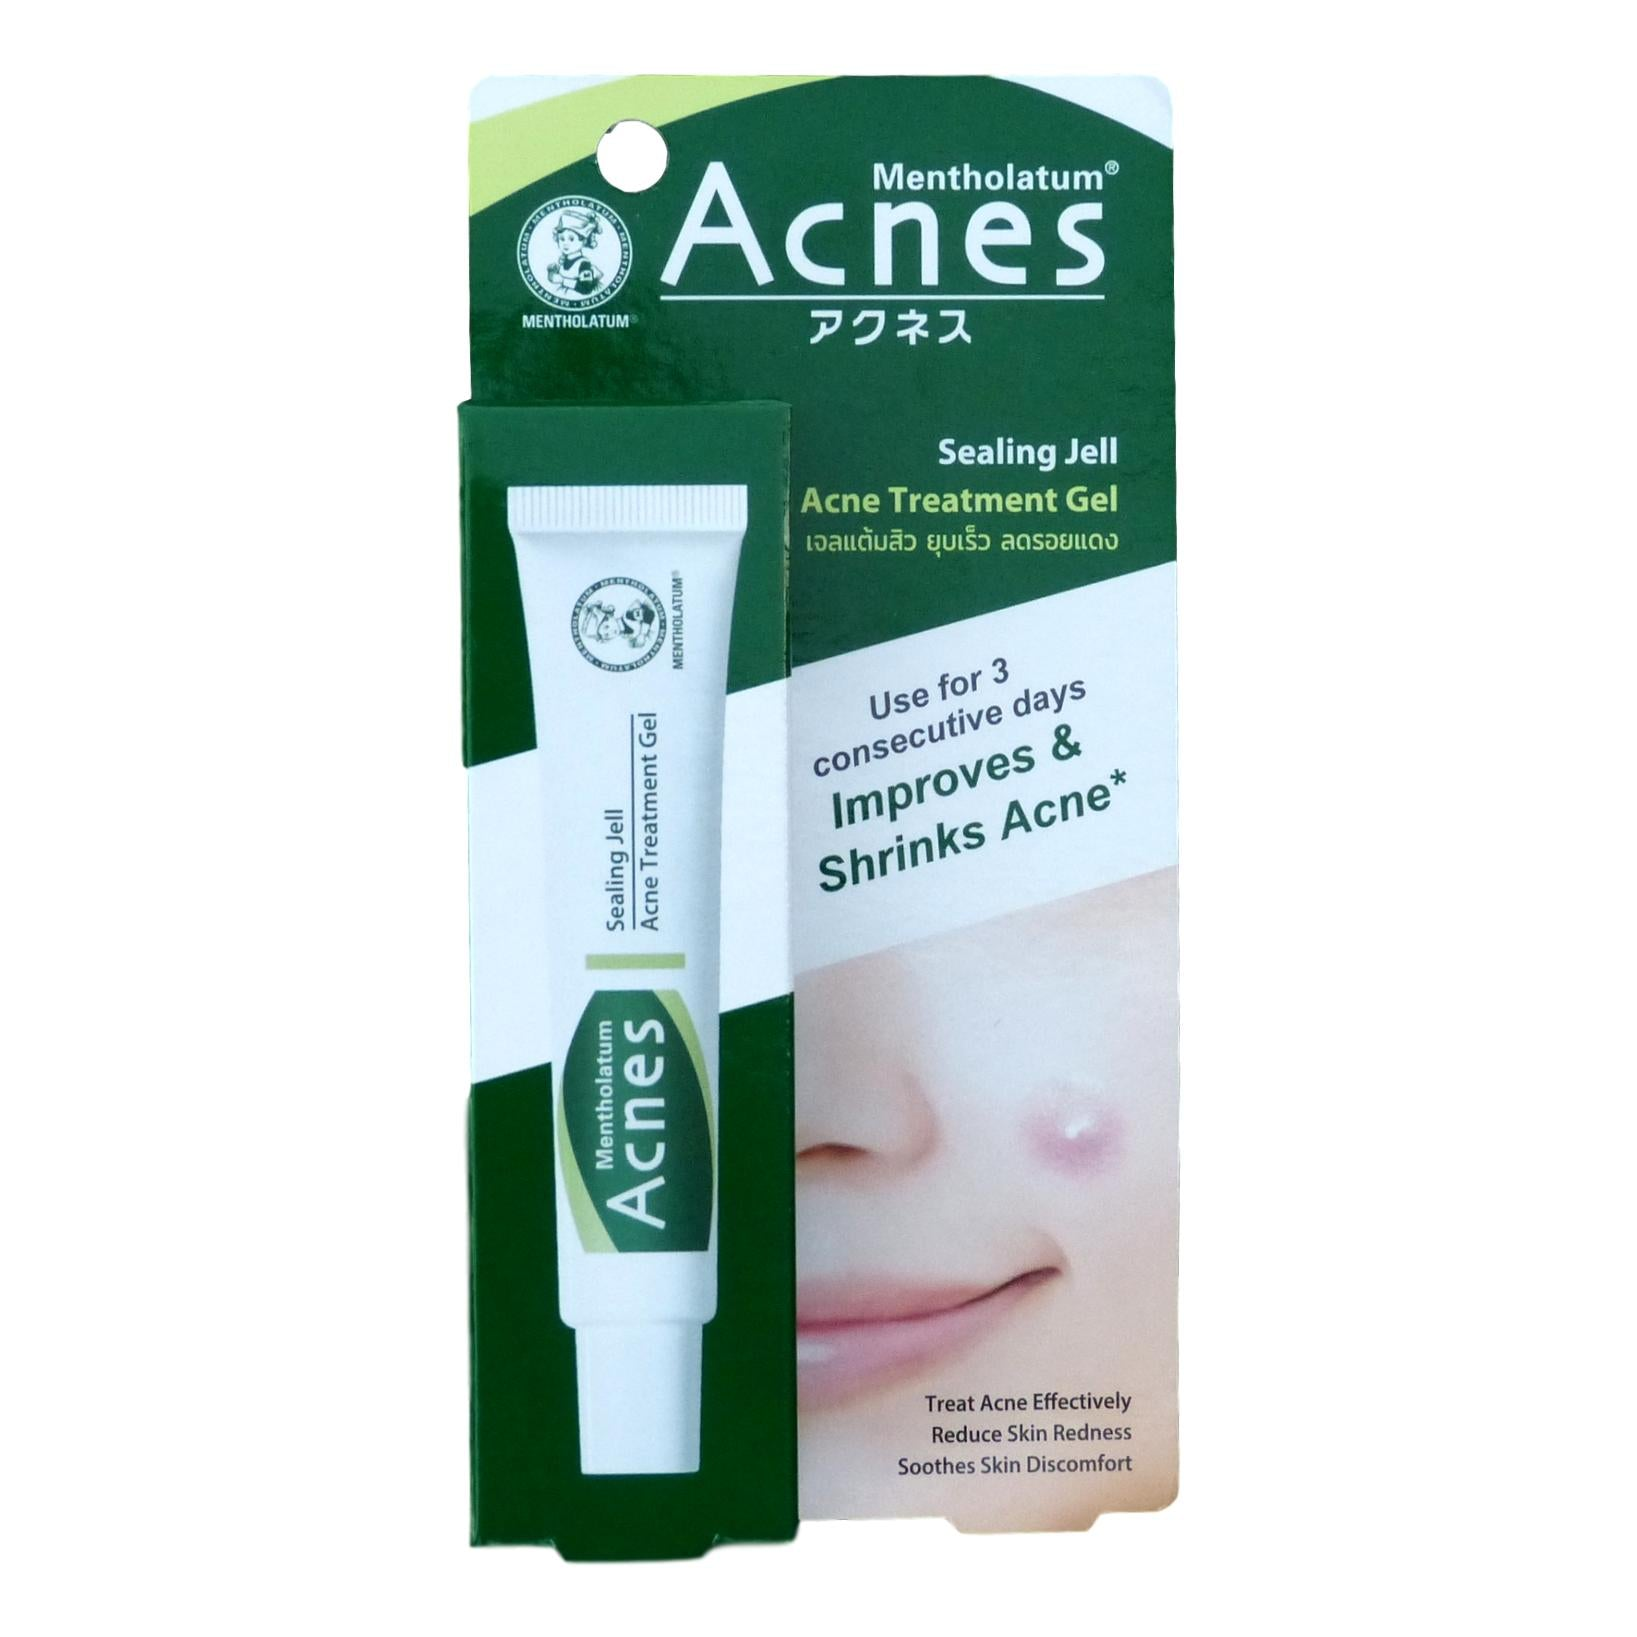 Mentholatum Acnes Sealing Jell Medicated Anti Acne Treatment Gel